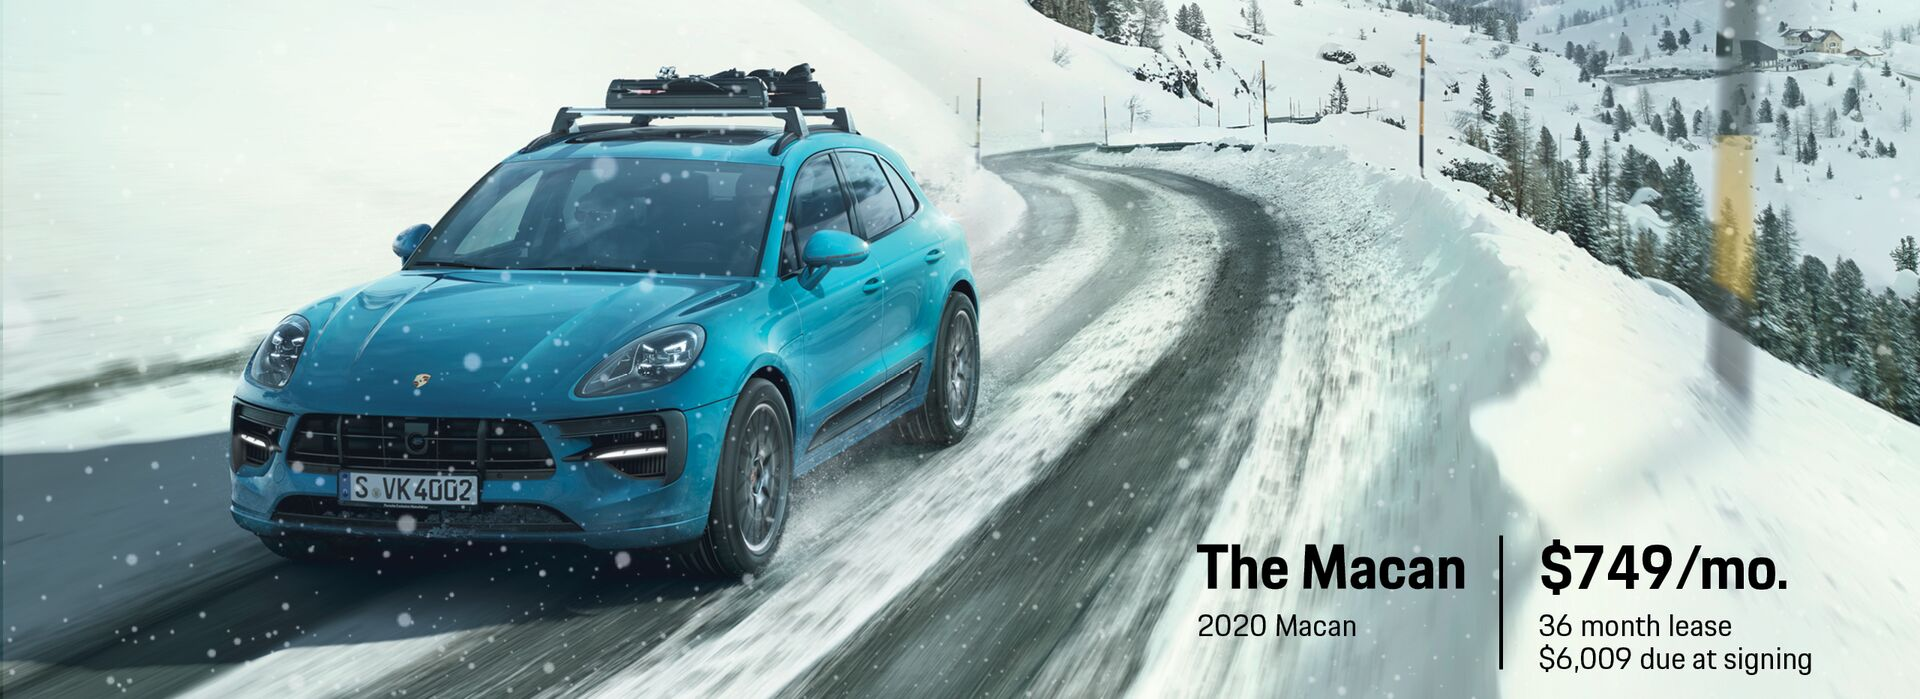 December Lease Deal 2020 Macan